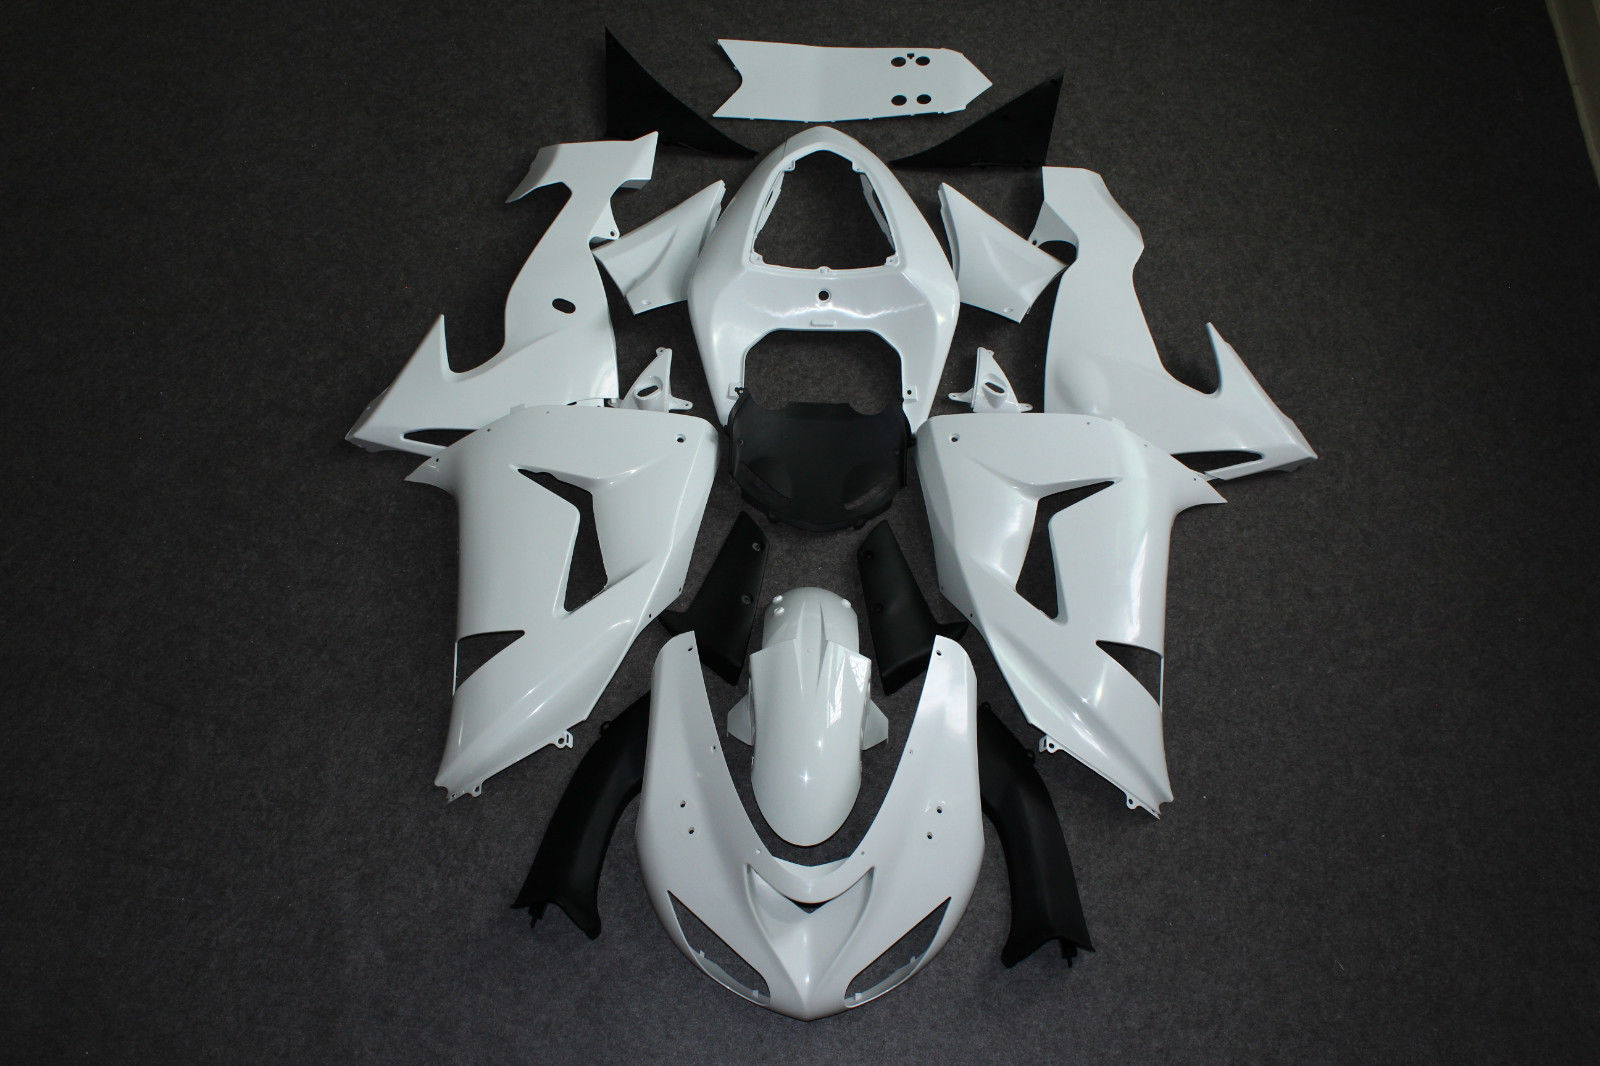 ZXMT Full Fairing Set Plastic Panel Kit For ZX 10R 2006 2007 ZX10R 06 07 Unpainted White ABS Complete